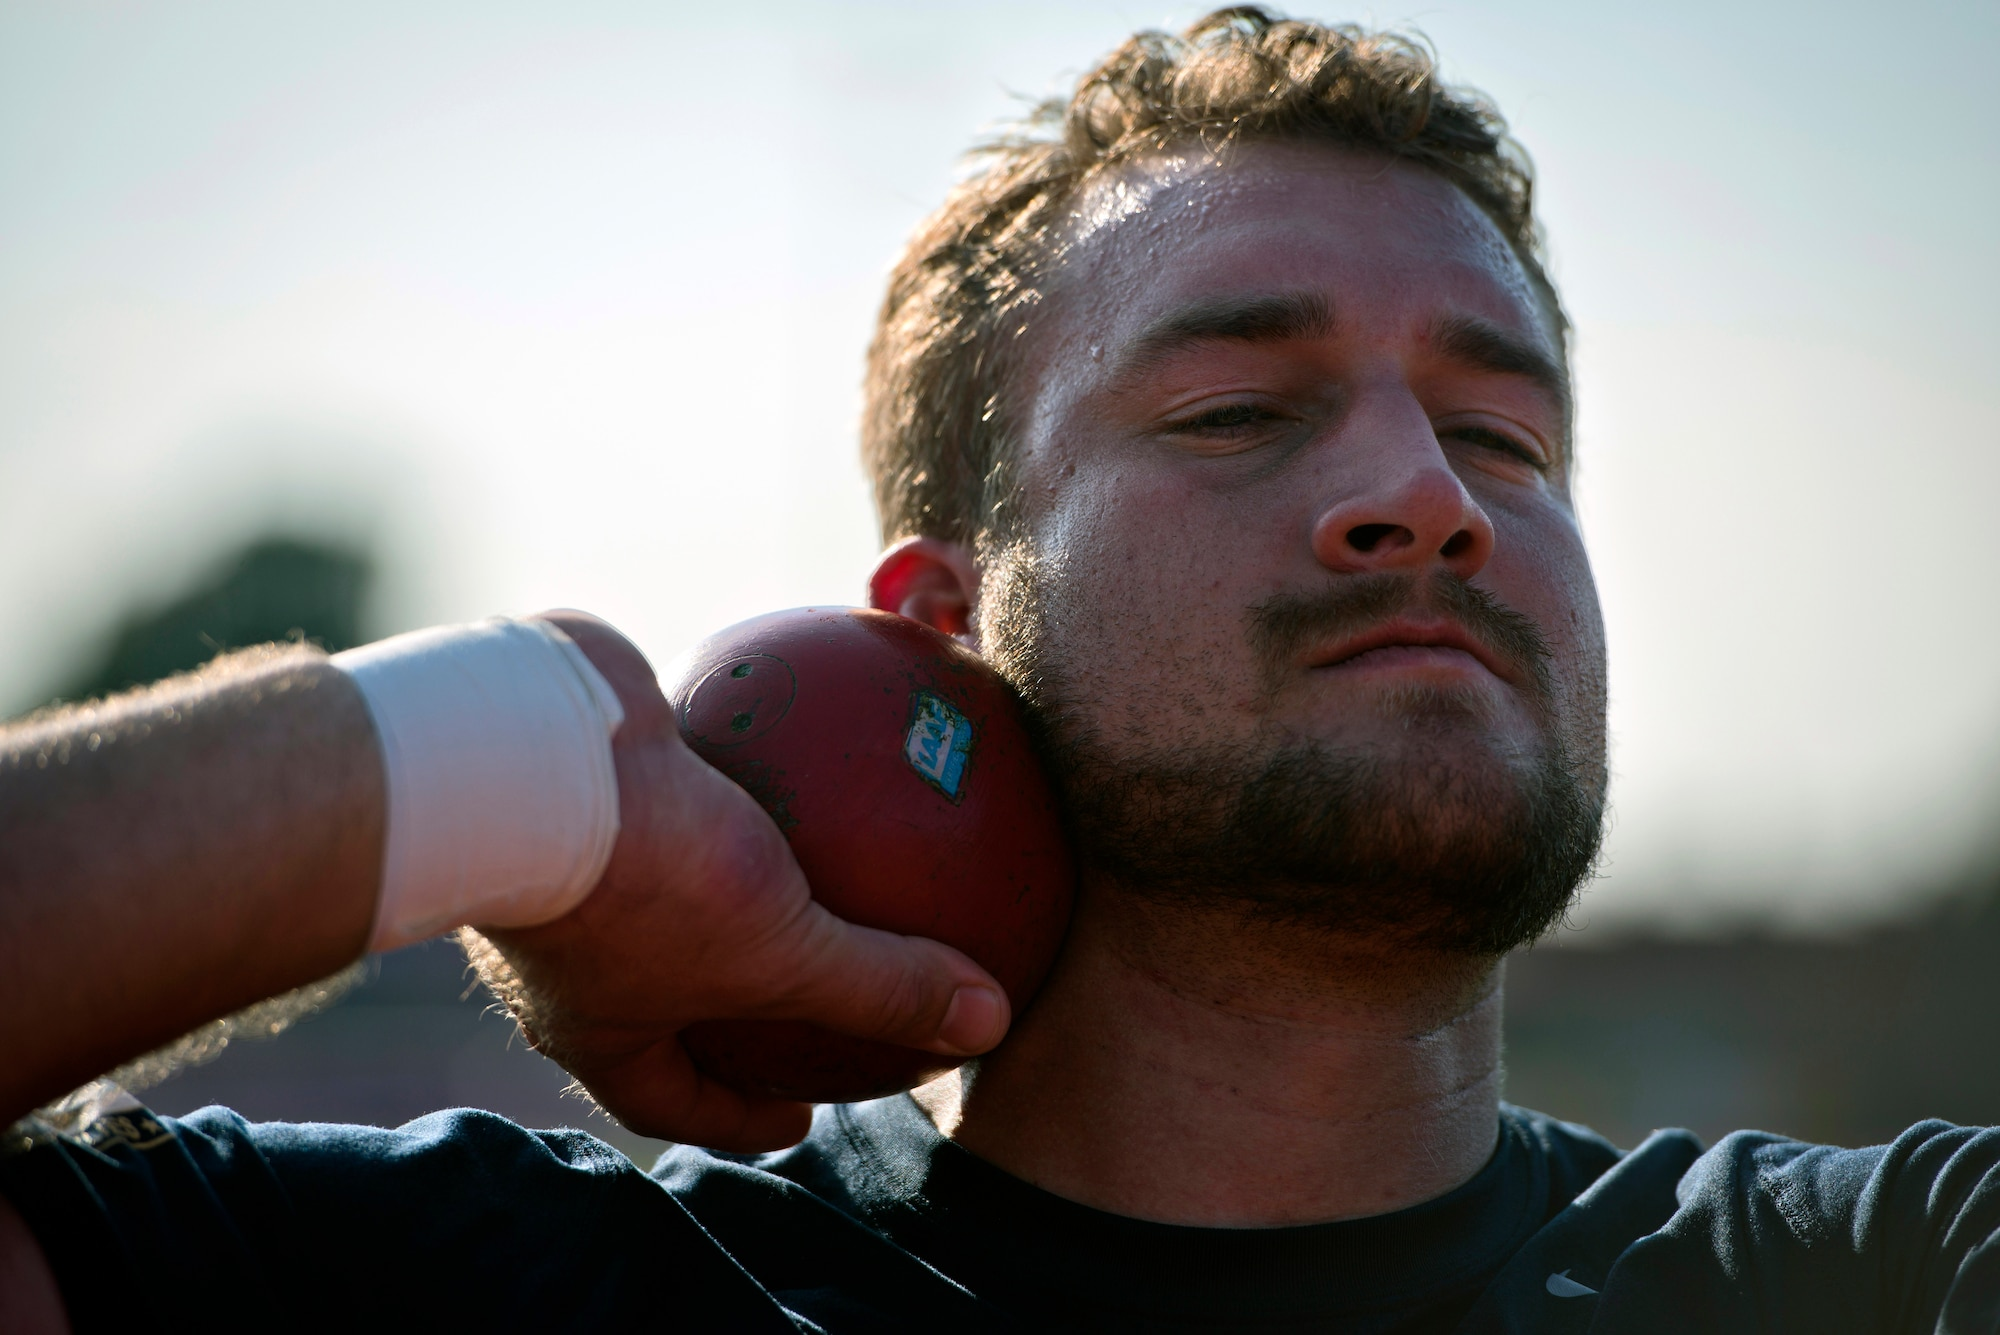 Retired Navy  Petty Officer 3rd Class Max Rohn prepares to toss a shot put during training for the inaugural 2014 Invictus Games Sept. 8, 2014, at Mayesbrook Field in London. The international paralympic-style, multi-sport event is designed for wounded service members. (U.S. Air Force photo/Staff Sgt. Andrew Lee)